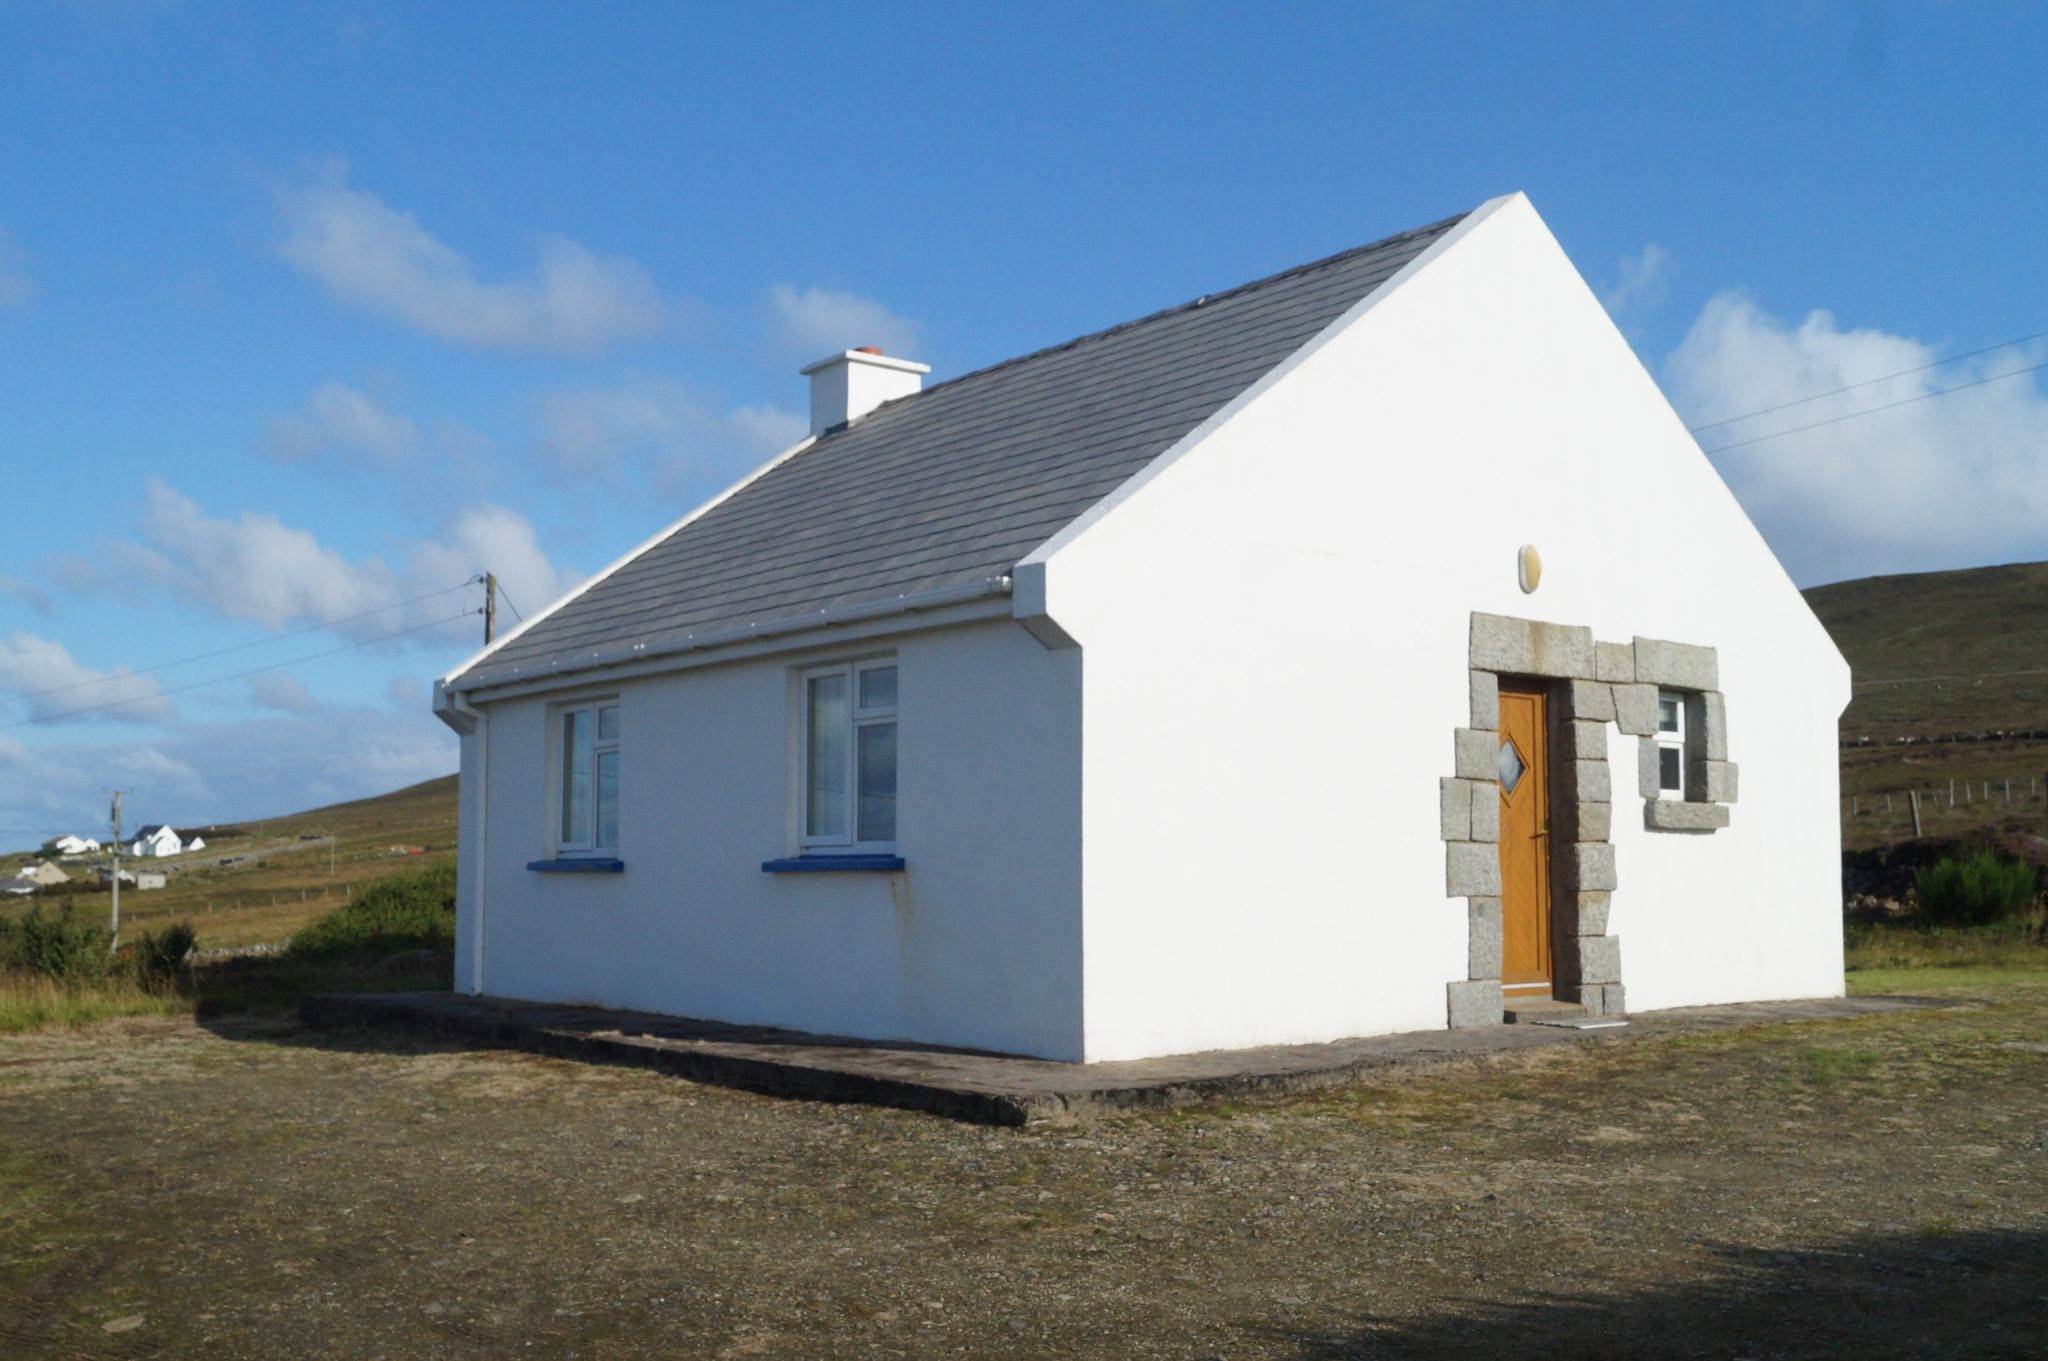 Chapel Road, Brinaleck, Co. Donegal